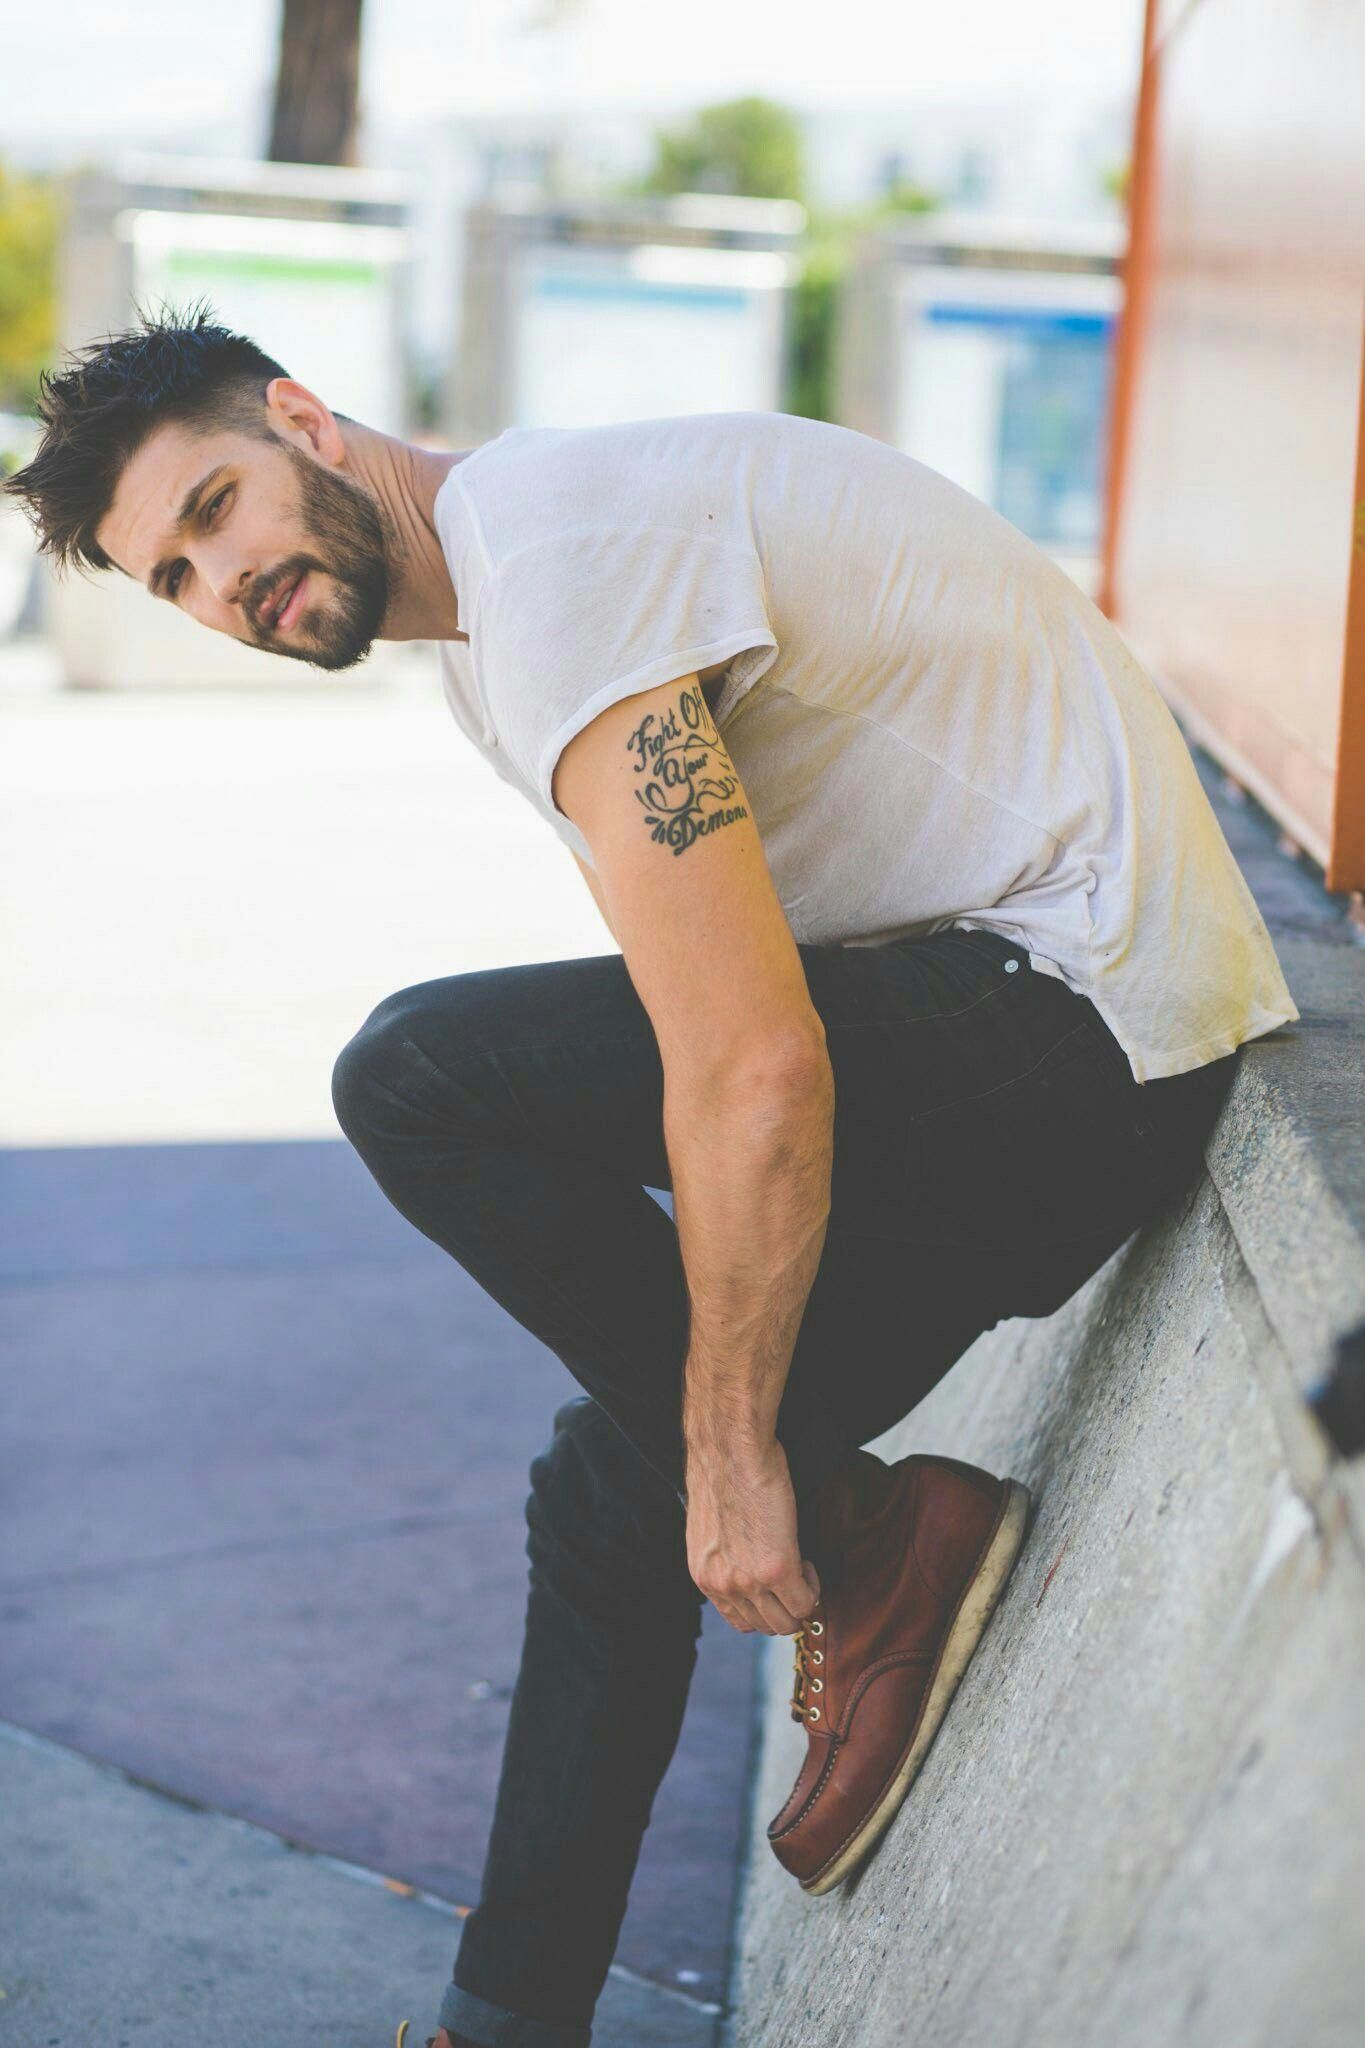 Awesome short mens hairstyles with beard! #shortmenshairstyleswithbeard #hairandbeardstyles